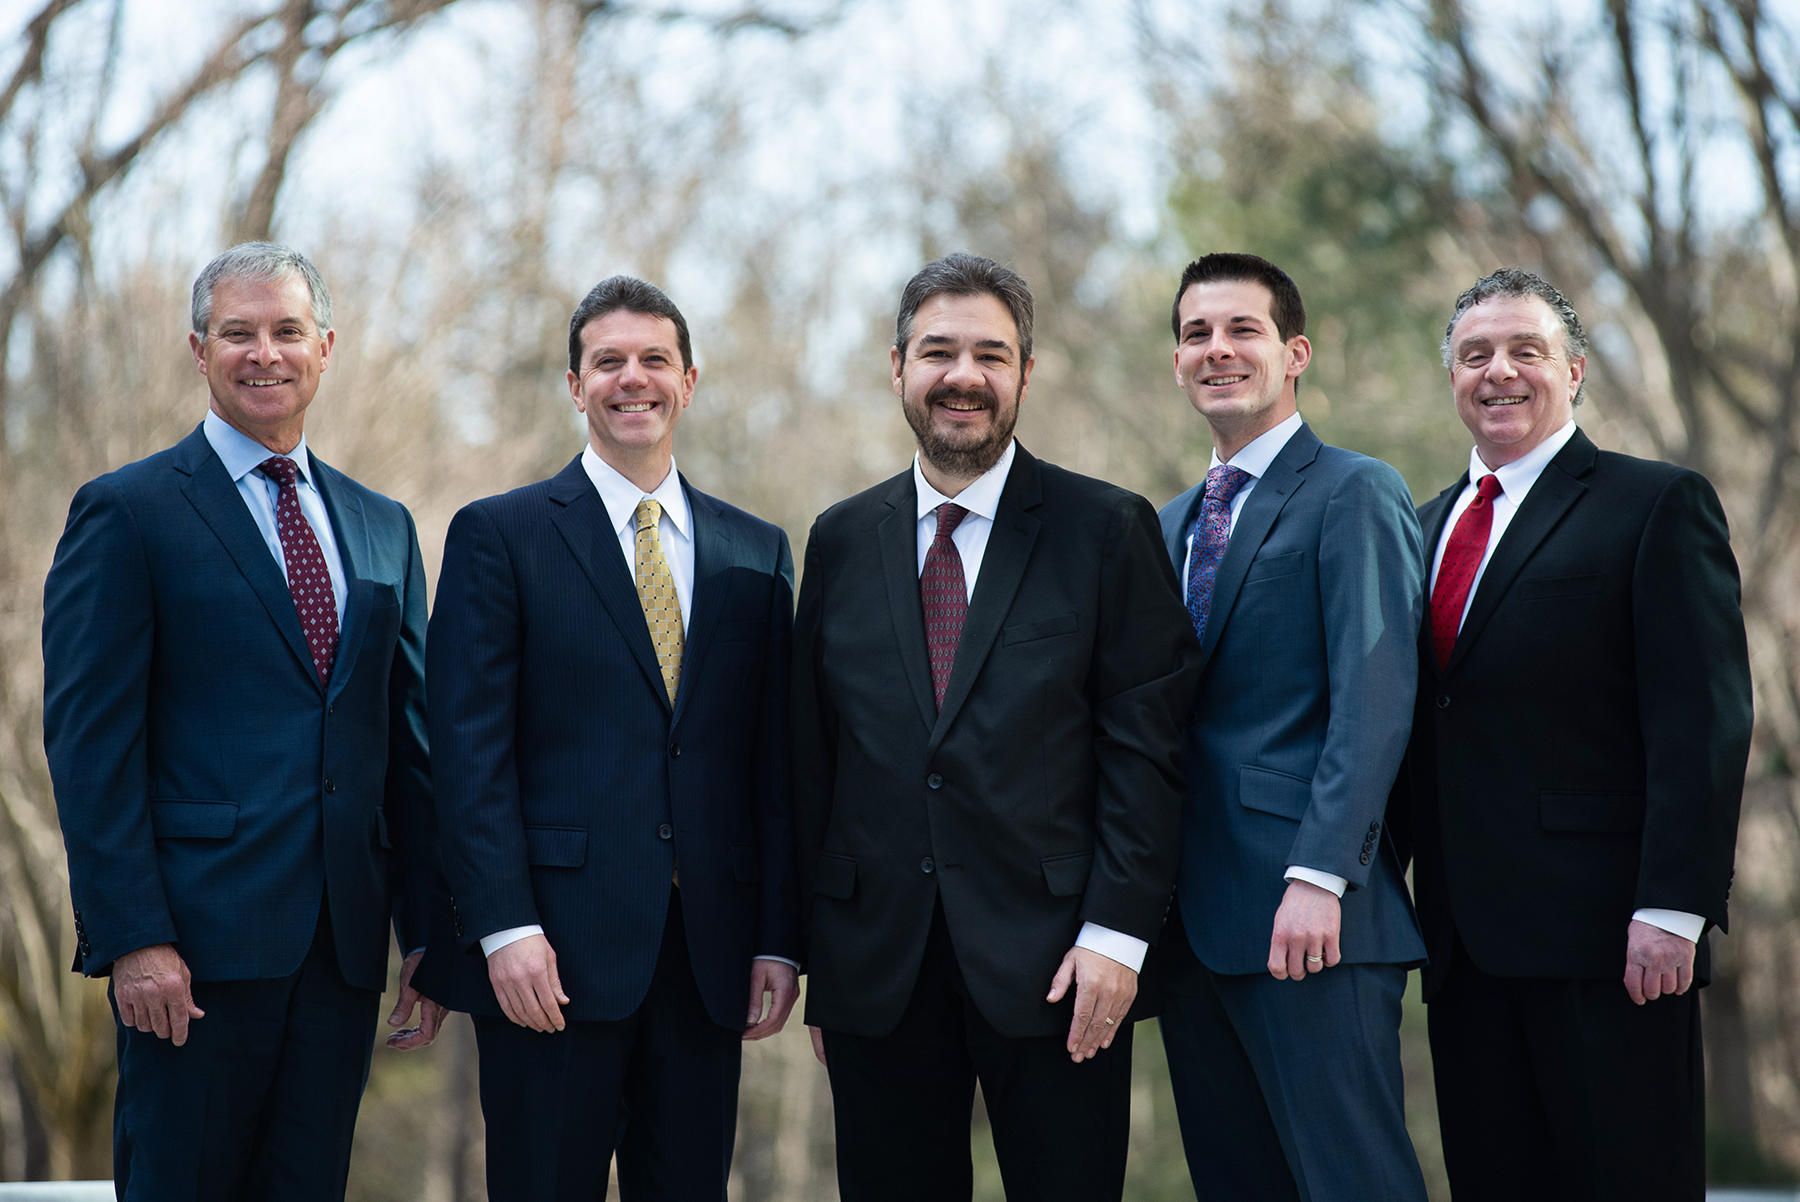 The Beacon Group | Blue Bell, PA | Morgan Stanley Wealth Management